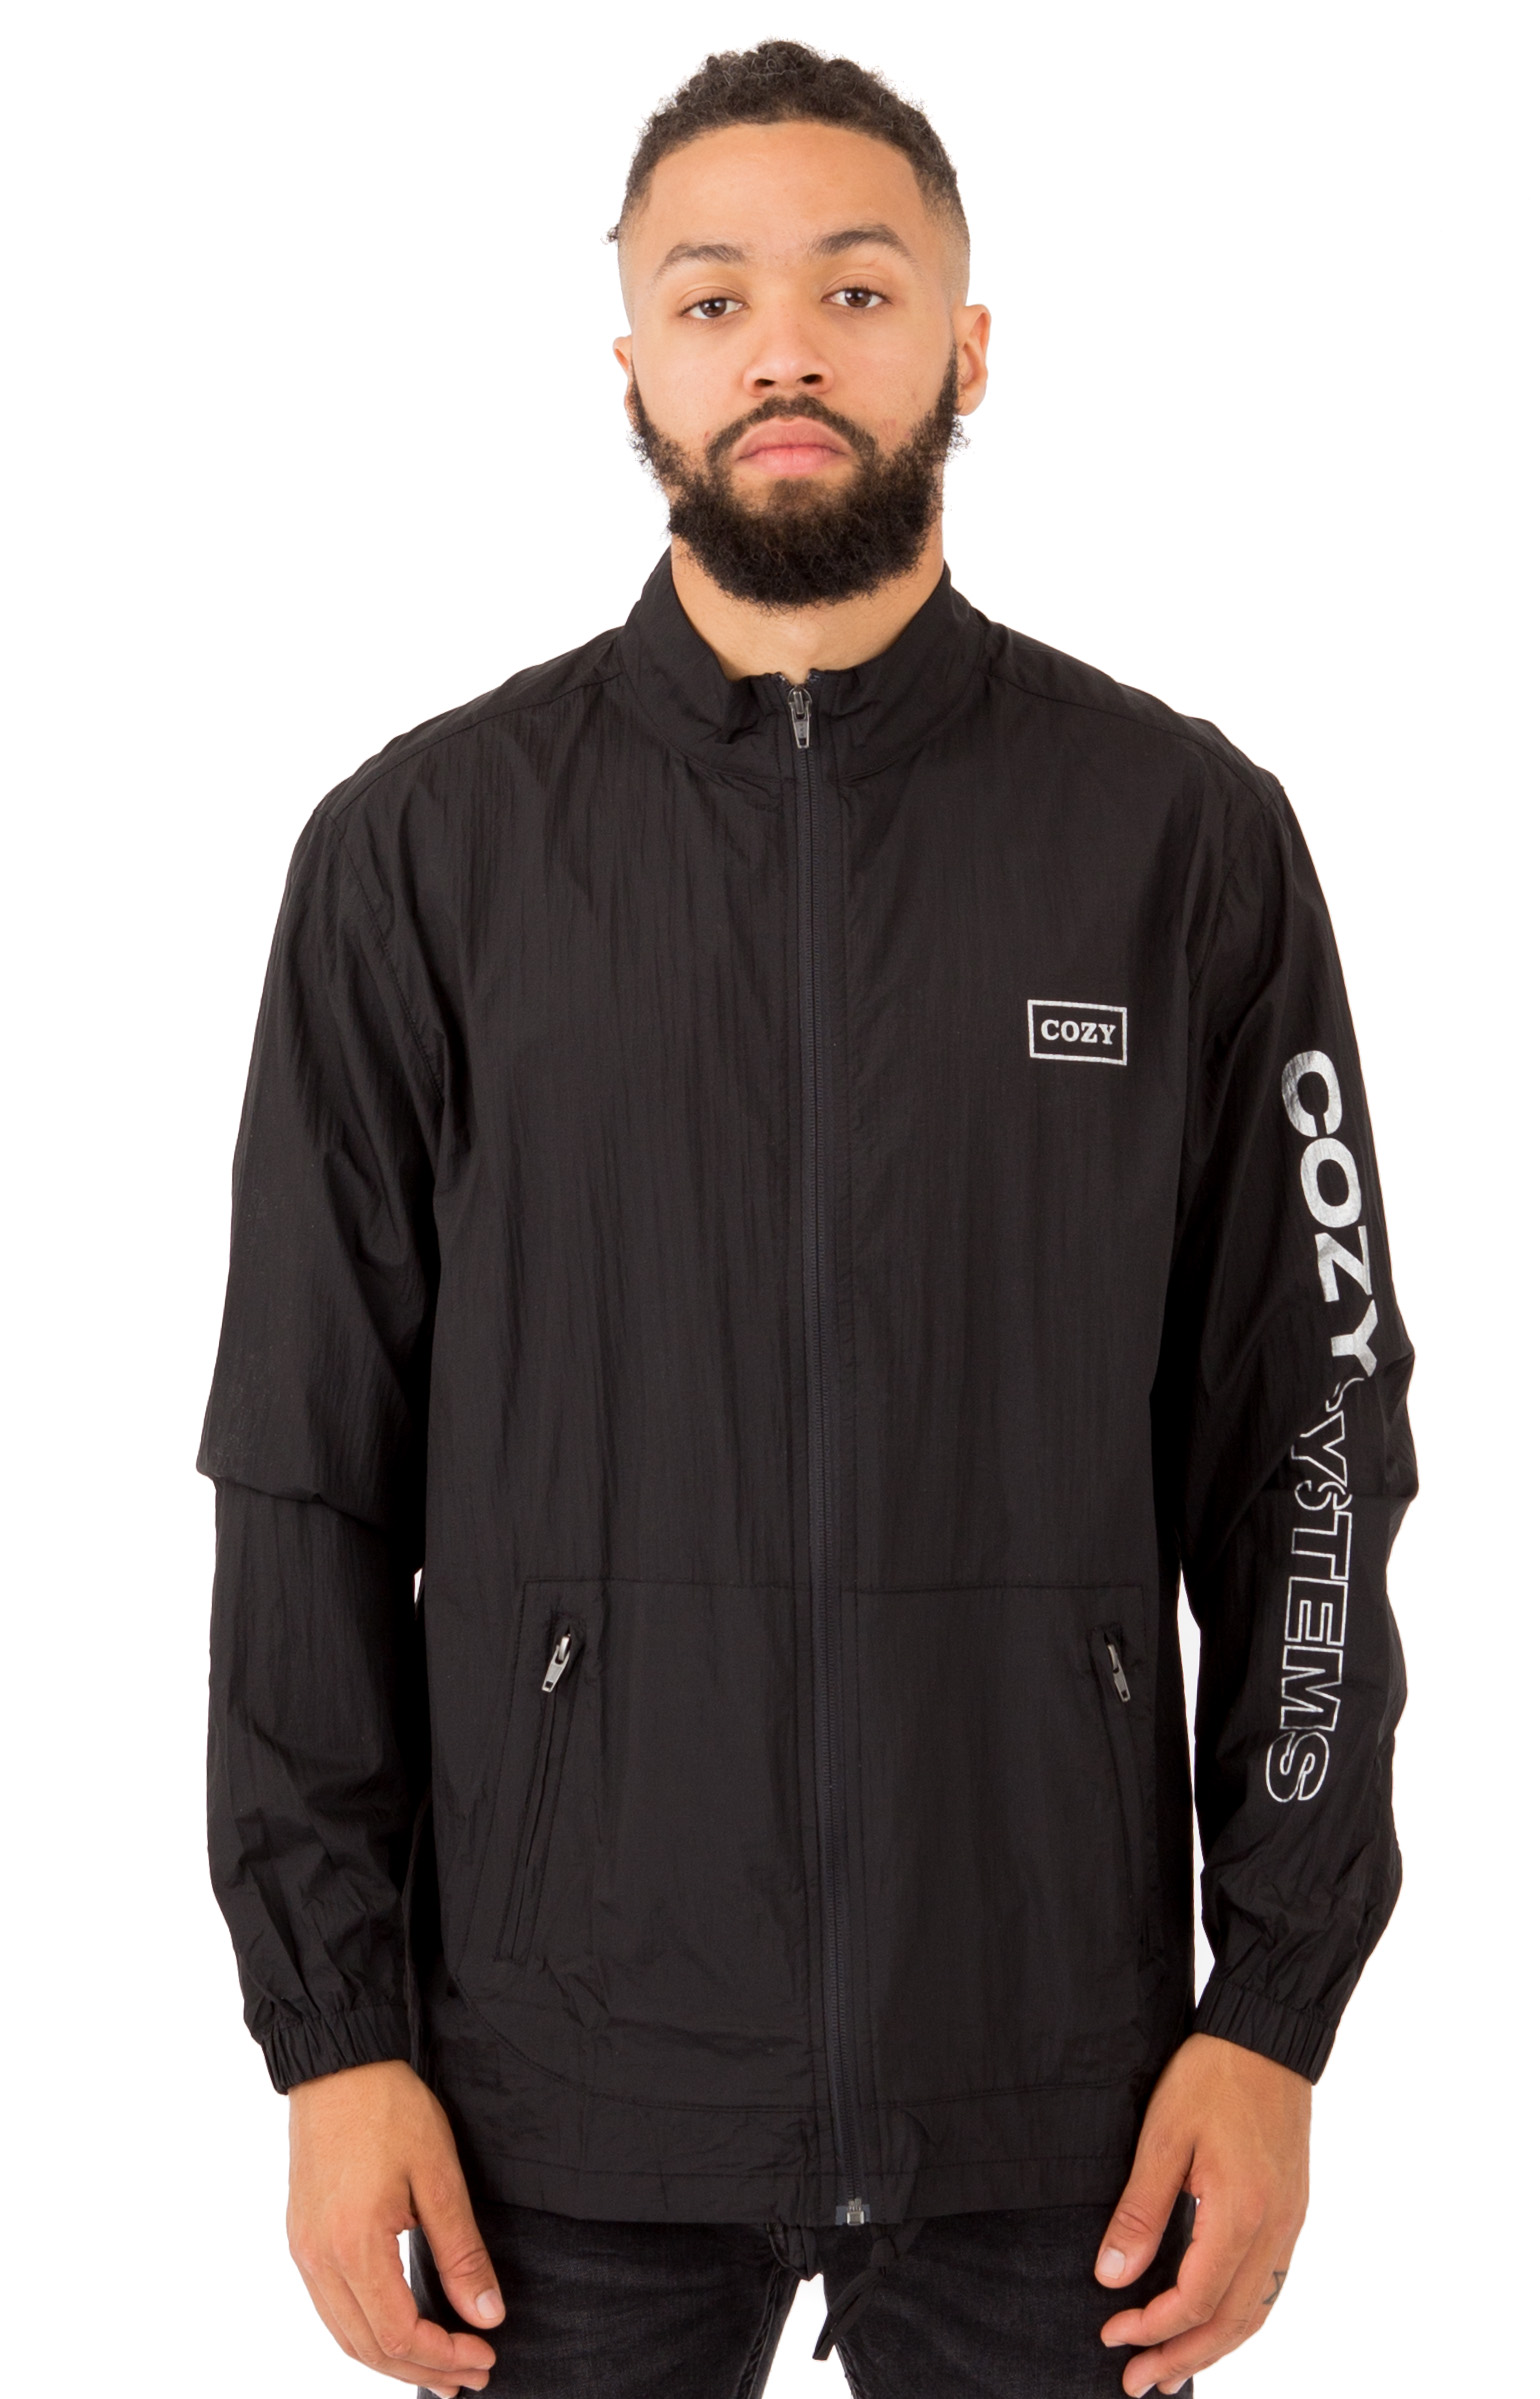 Covent Jacket - Black